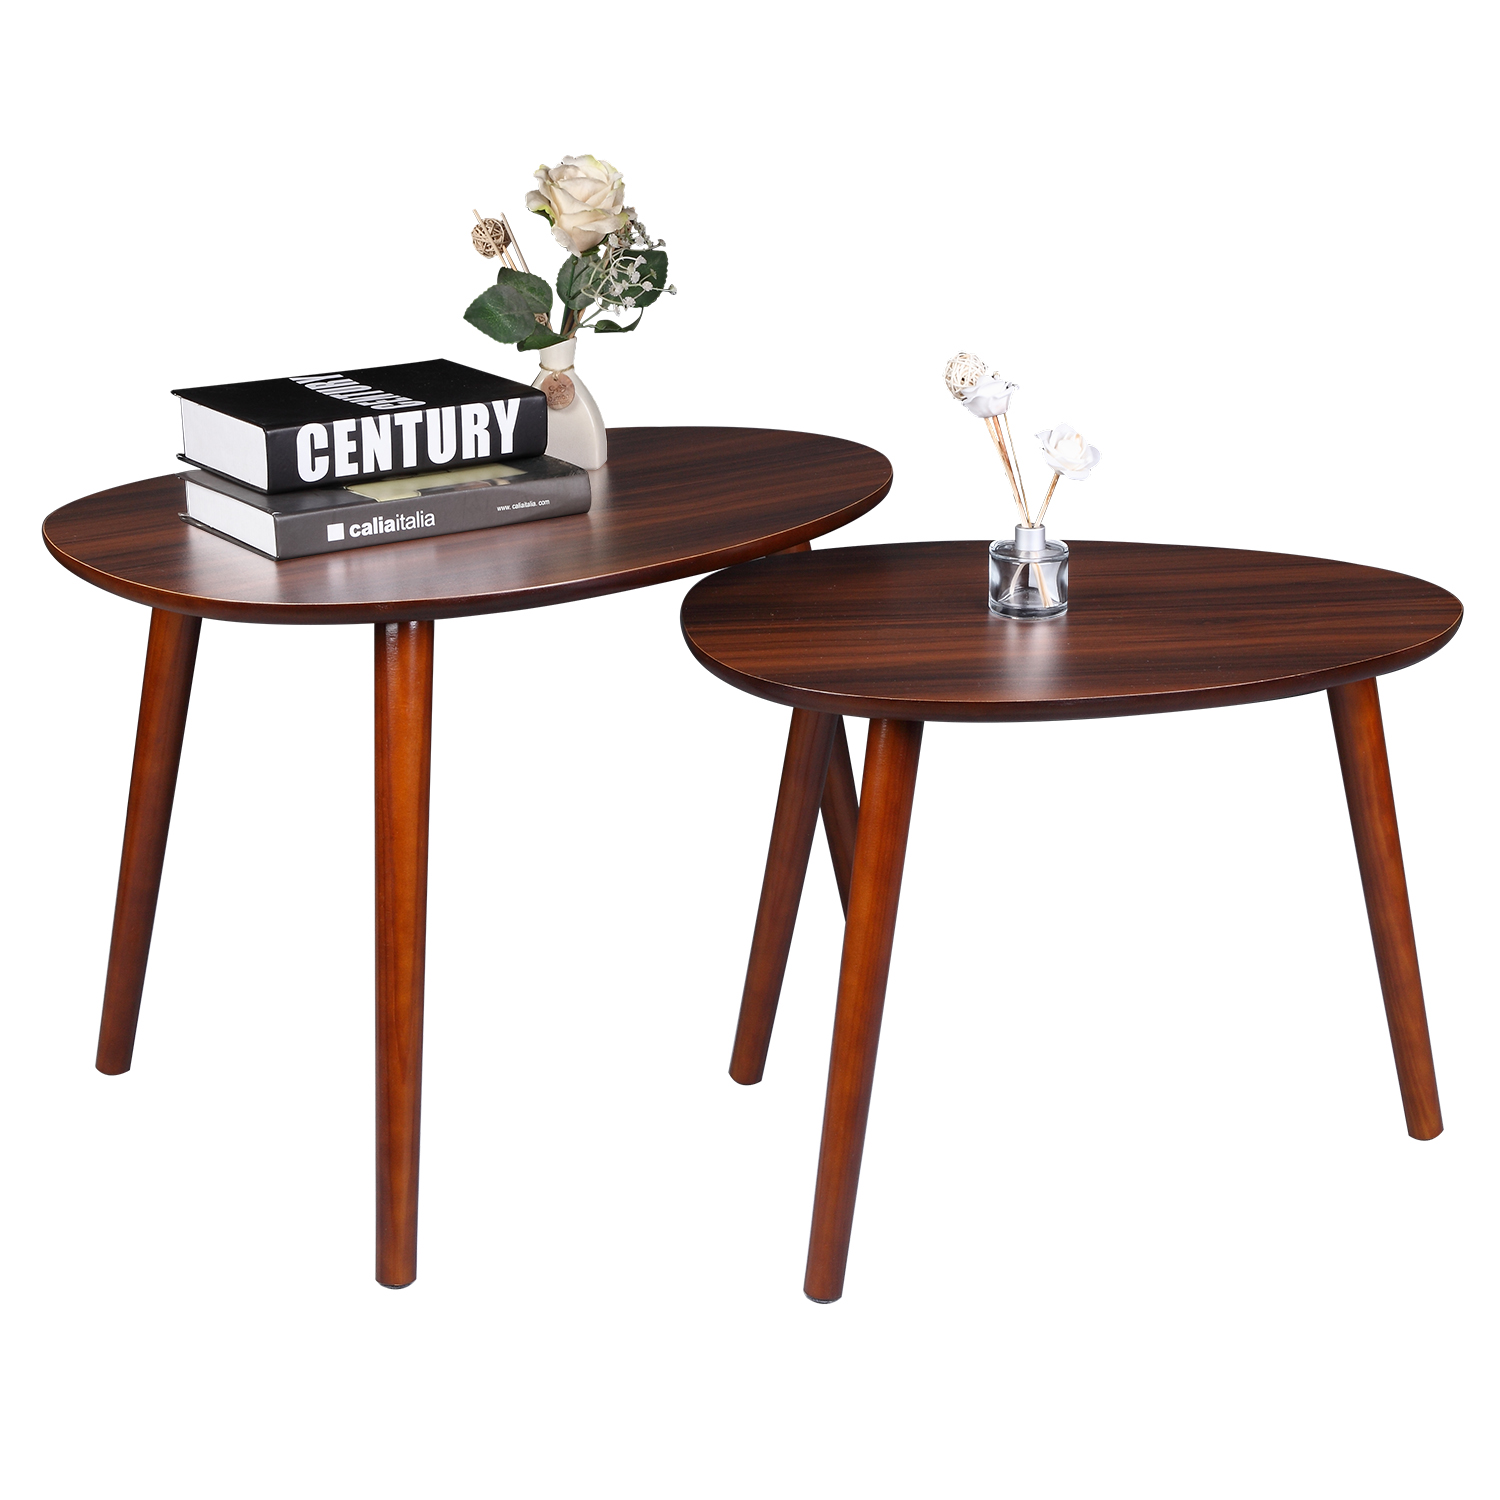 2pcs Set Nordic Style Cherry Wood Coffee Table Living Room Sofa Side Table Small Tea Table Home Furniture Aliexpress